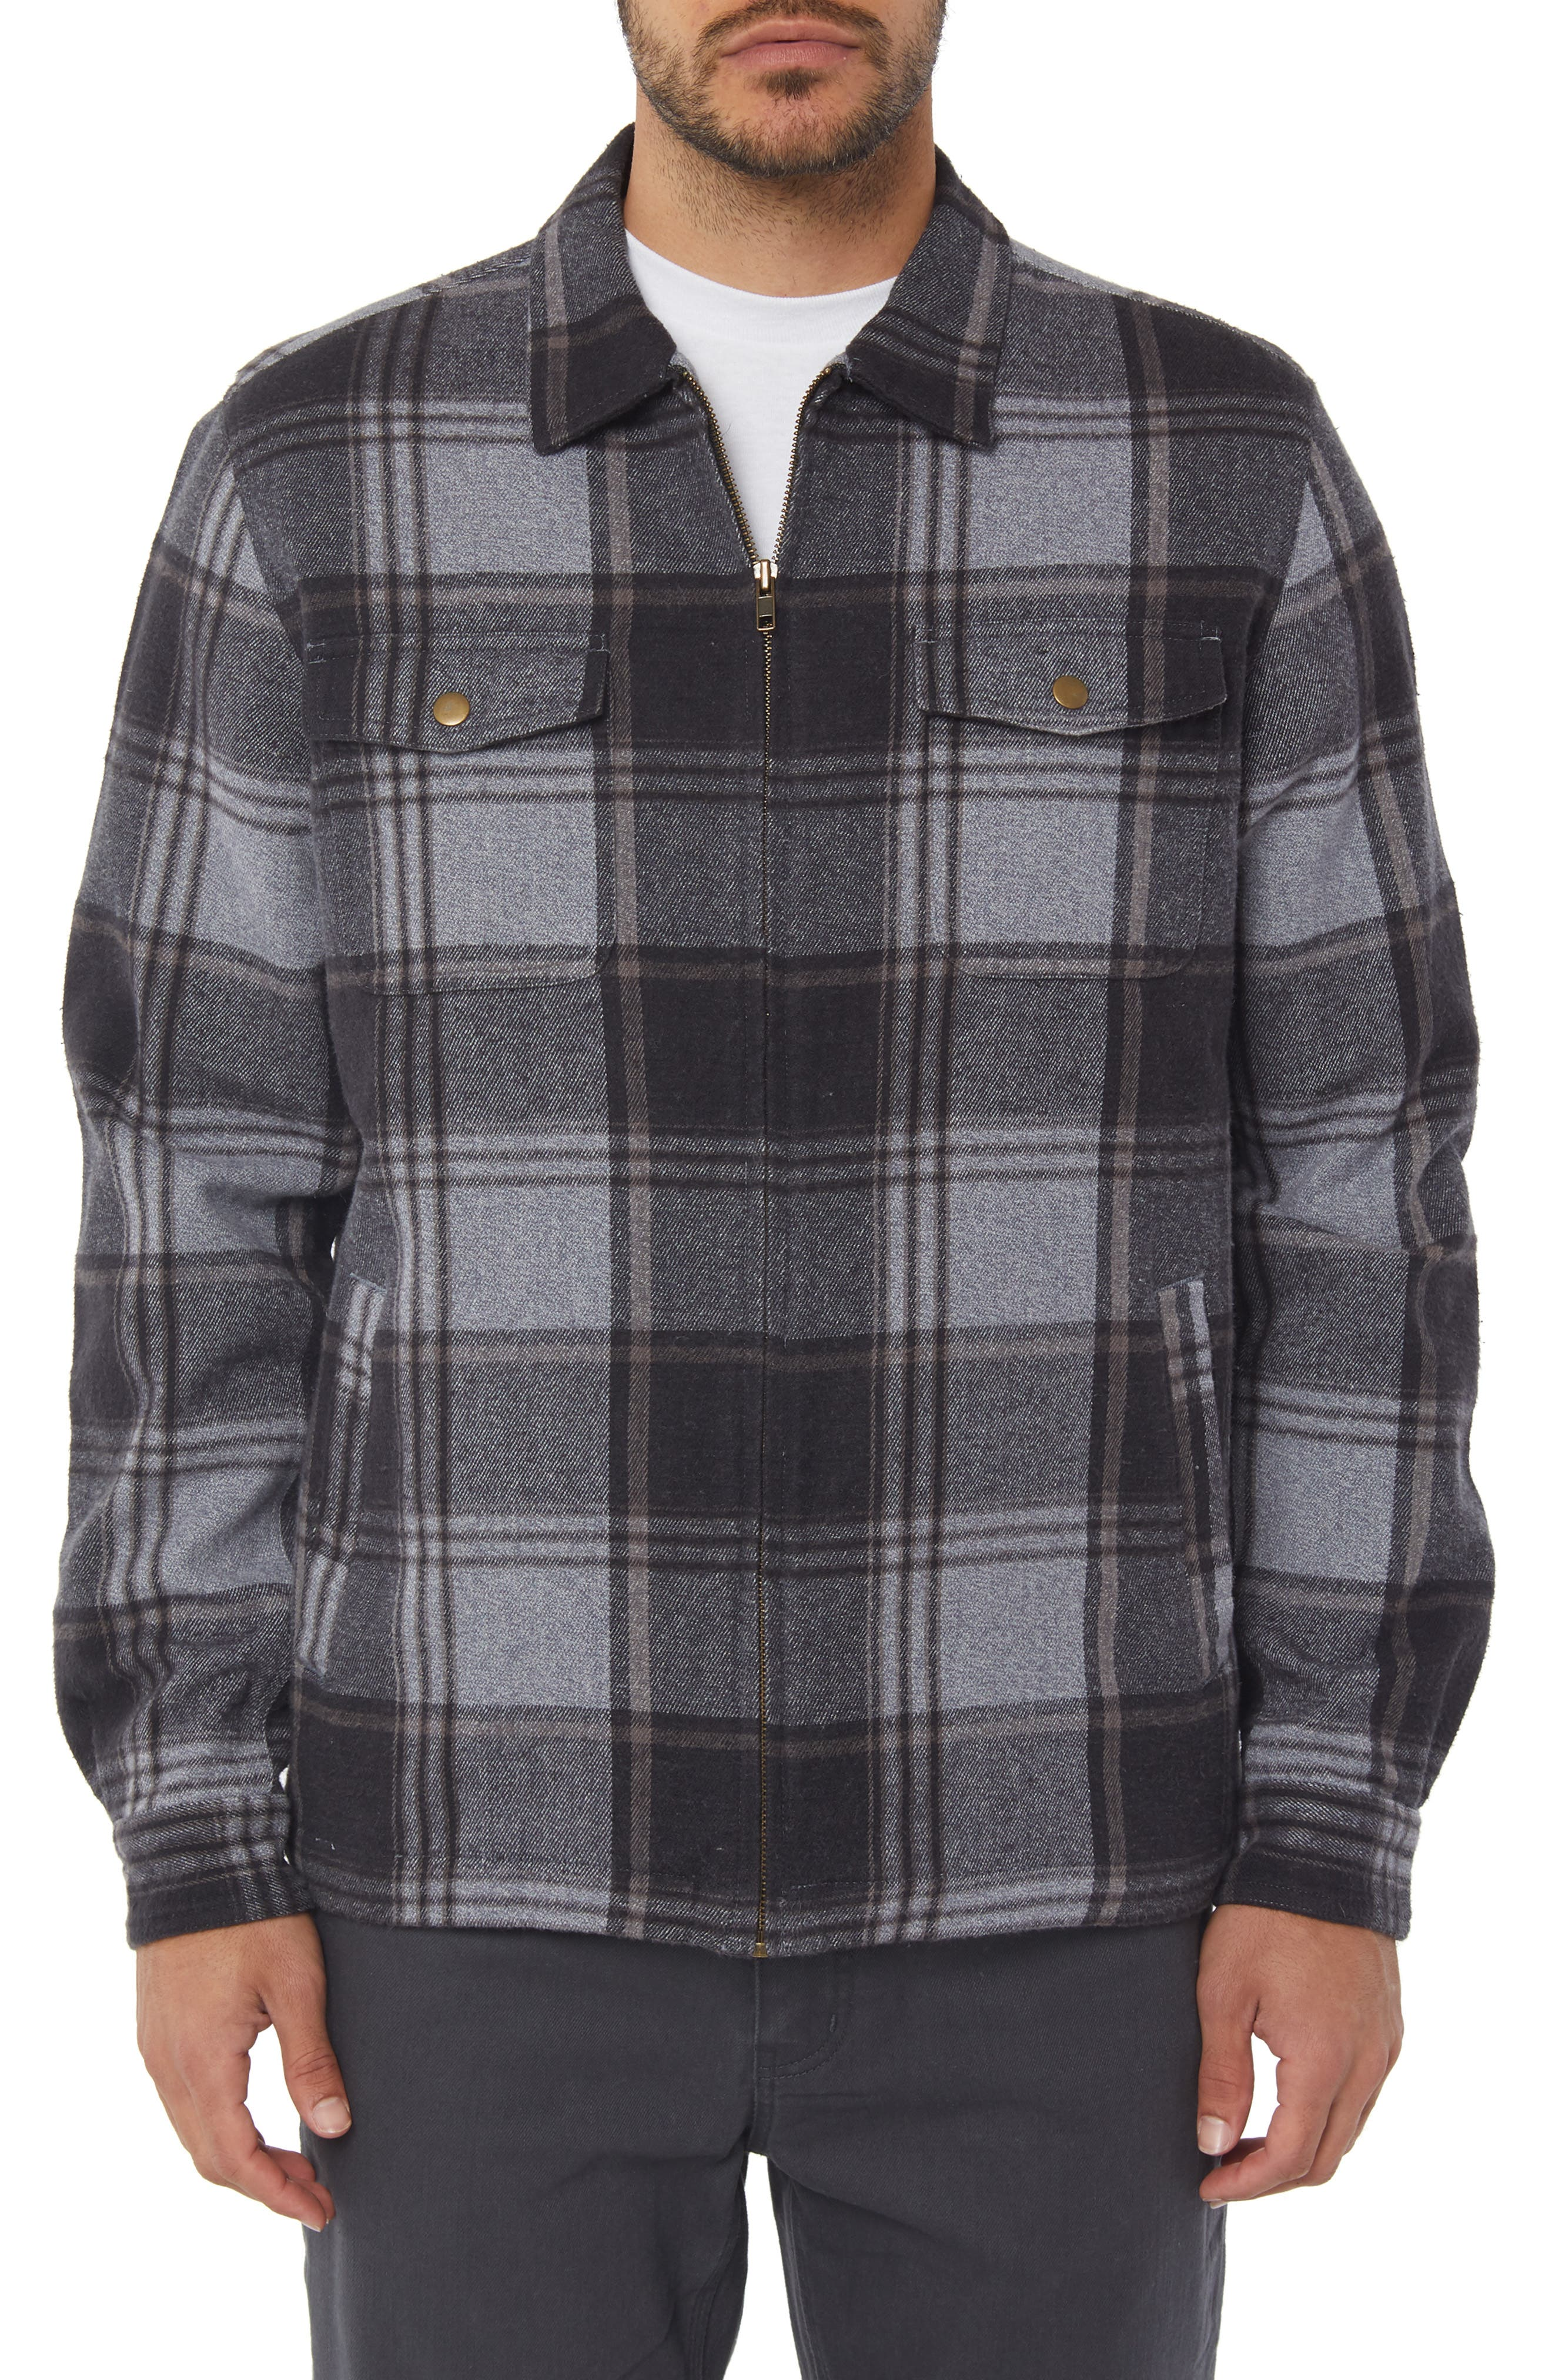 Lodge Flannel Shirt Jacket,                             Main thumbnail 1, color,                             ASPHALT